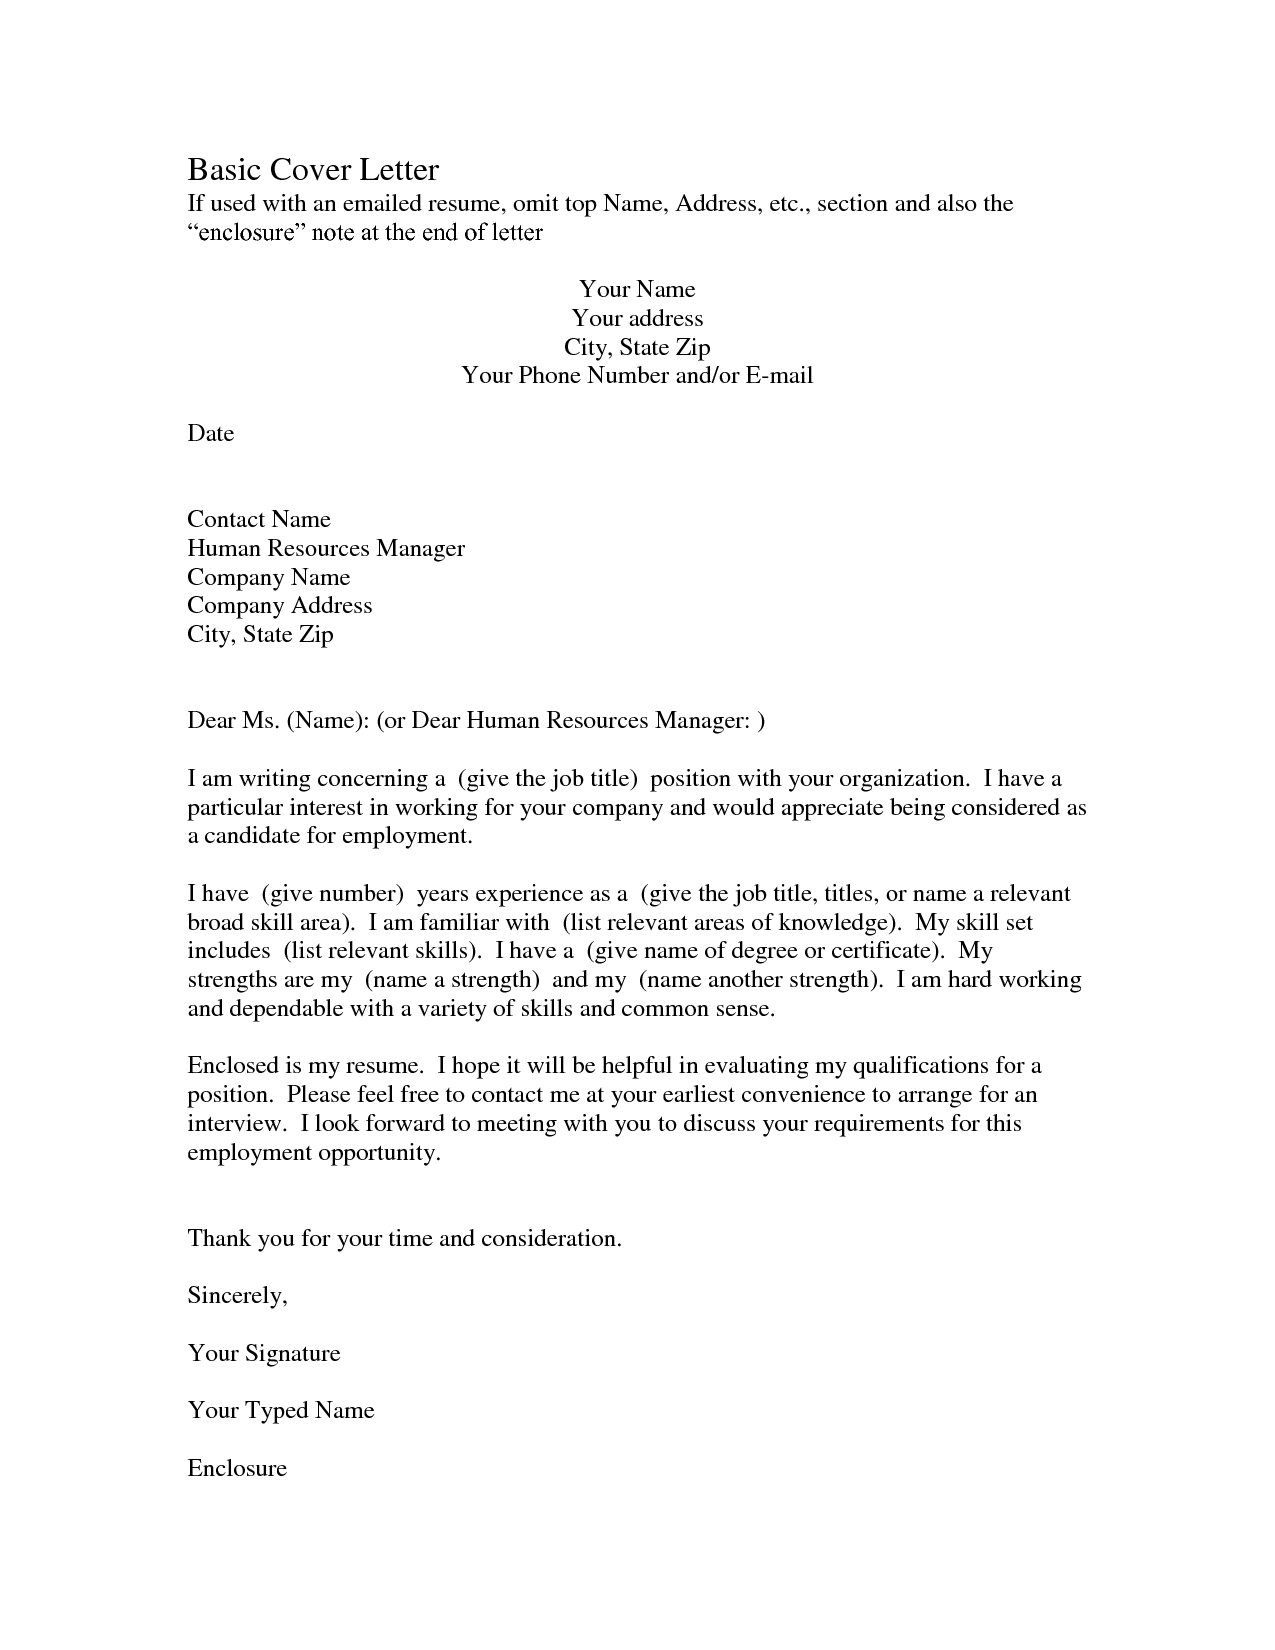 covering letter example simple cover letter examplesimple cover letter application letter sample